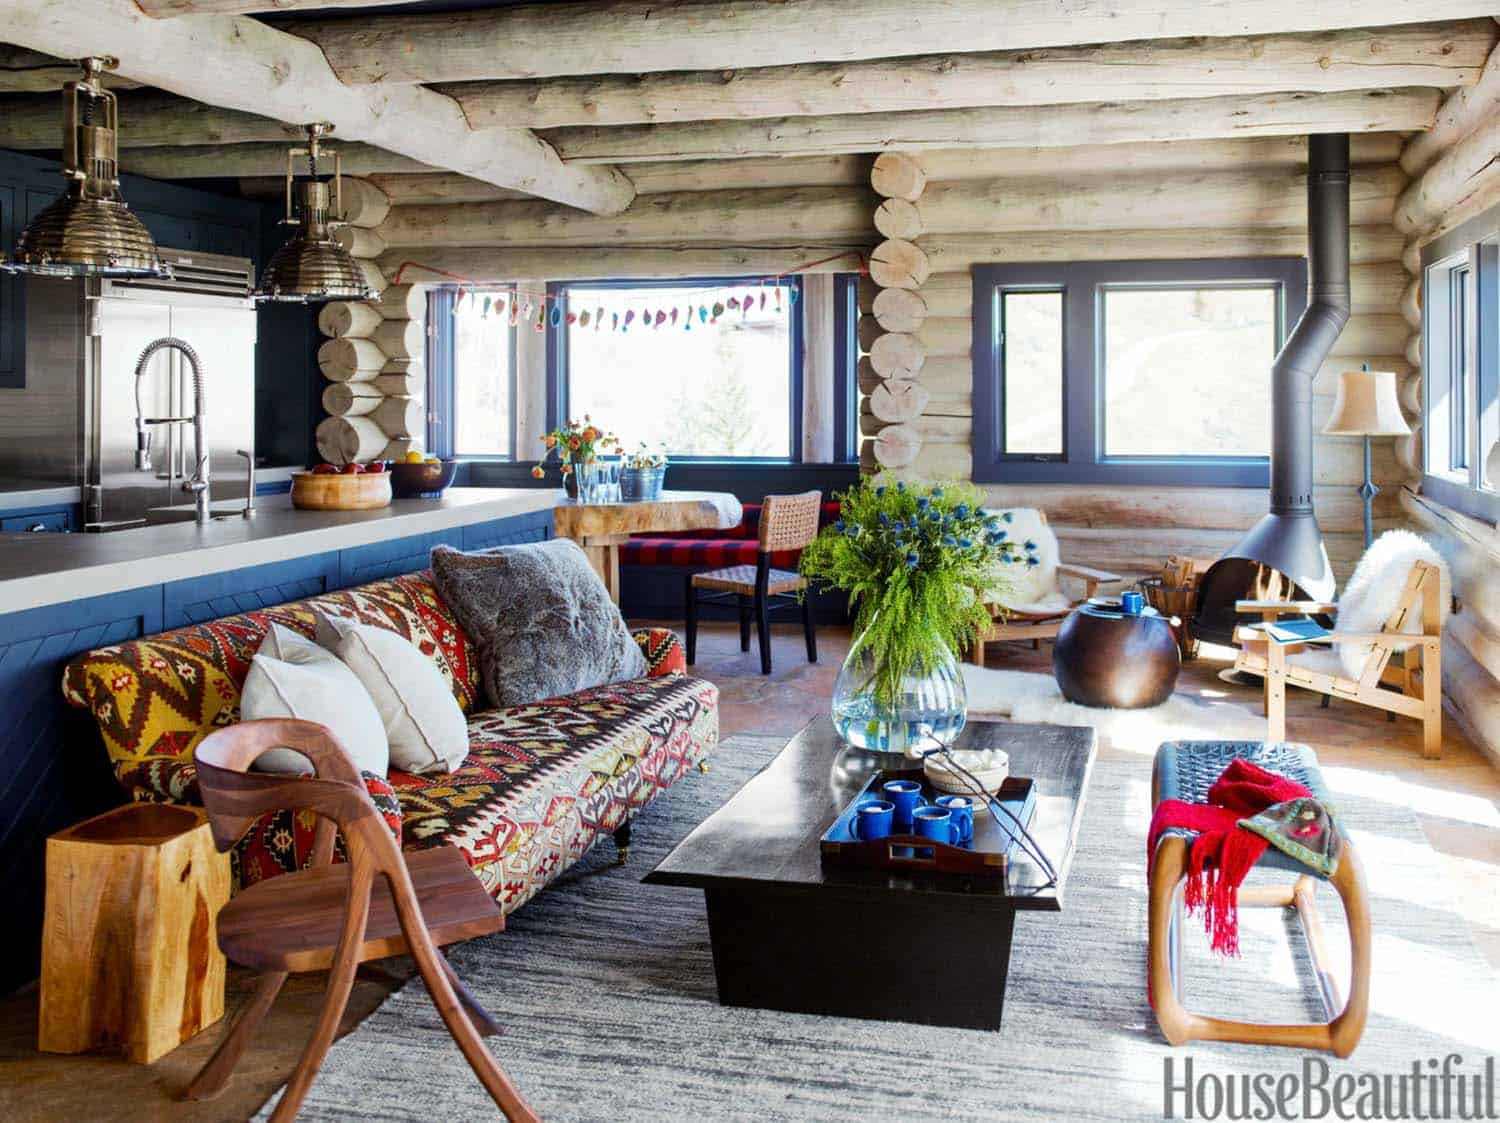 Rustic Log Cabin-Thom Filicia-03-1 Kindesign